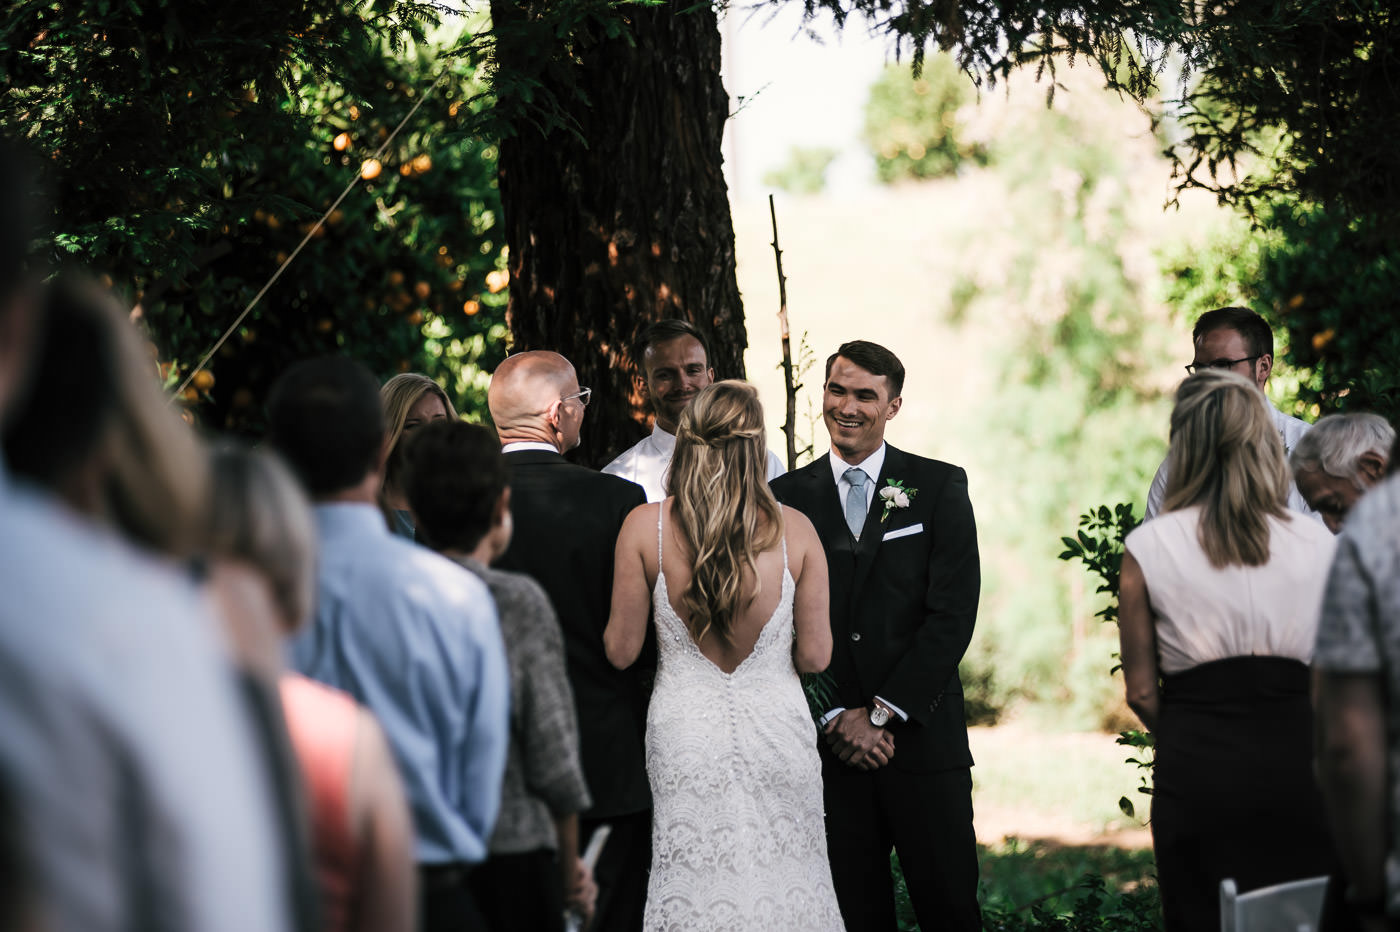 Temecula wedding photographer captures this happy groom turn to all smiles as he sees his bride coming down the aisle at their ceremony.